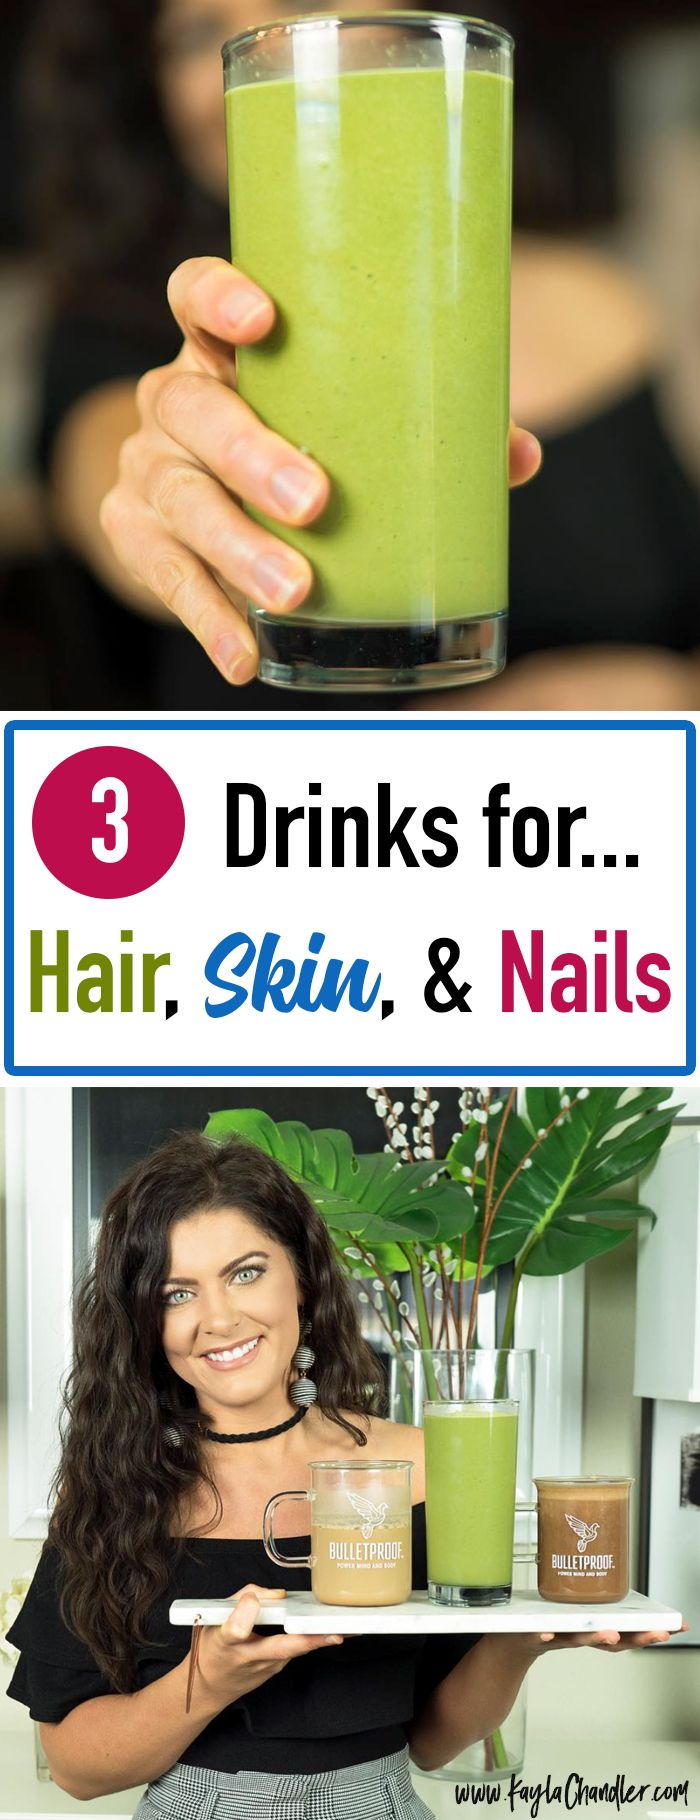 3 COLLAGEN DRINKS FOR HAIR, SKIN, NAILS | HEALTHY SKIN | HEALTHY HAIR